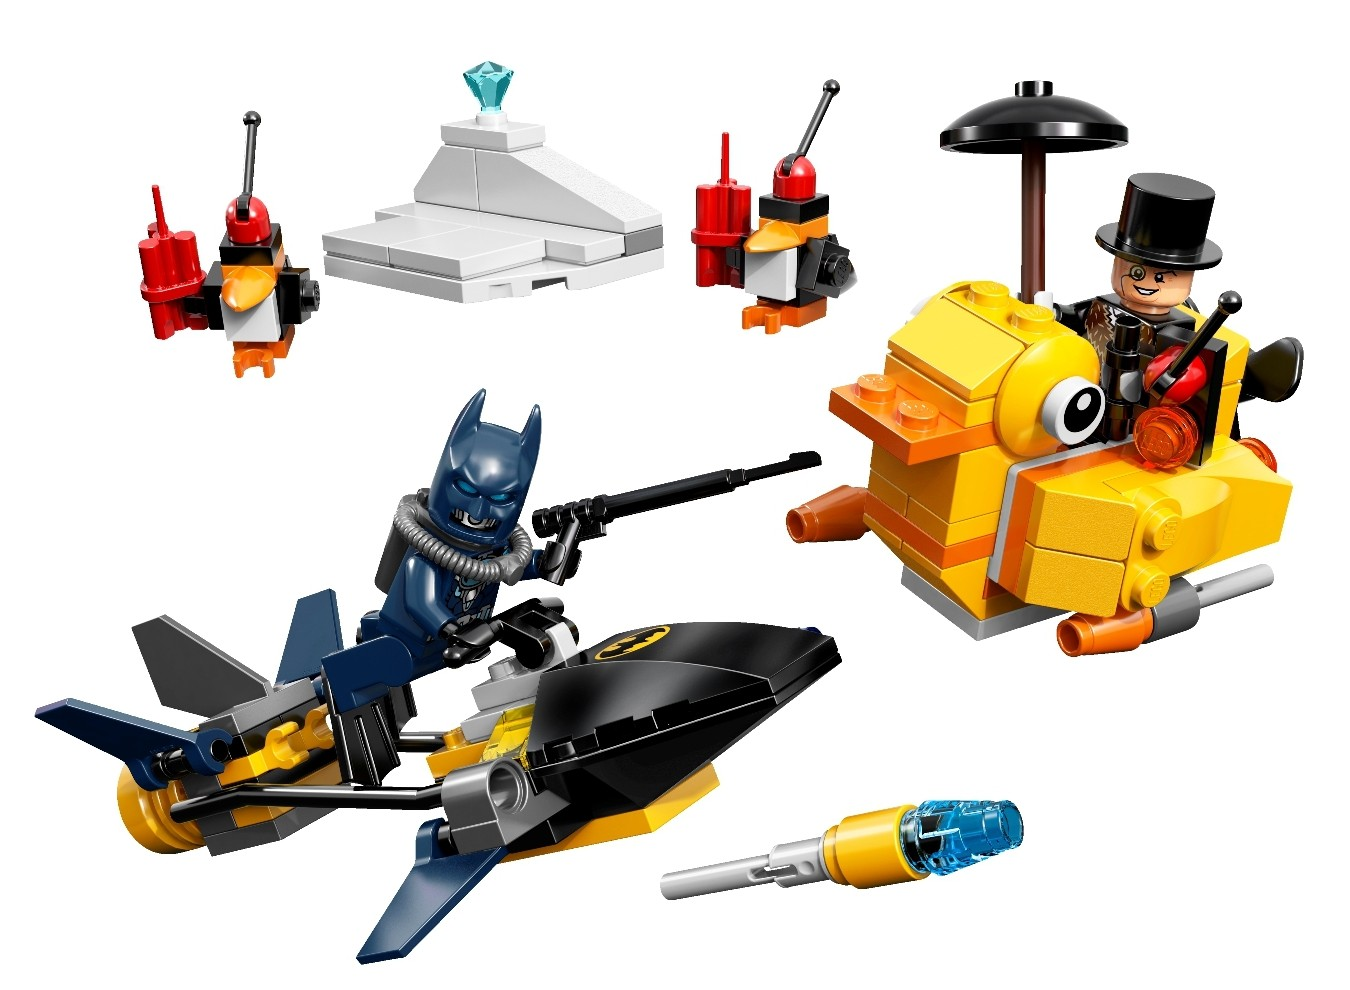 of the set, are you in for one of the more off-beat LEGO Batman sets